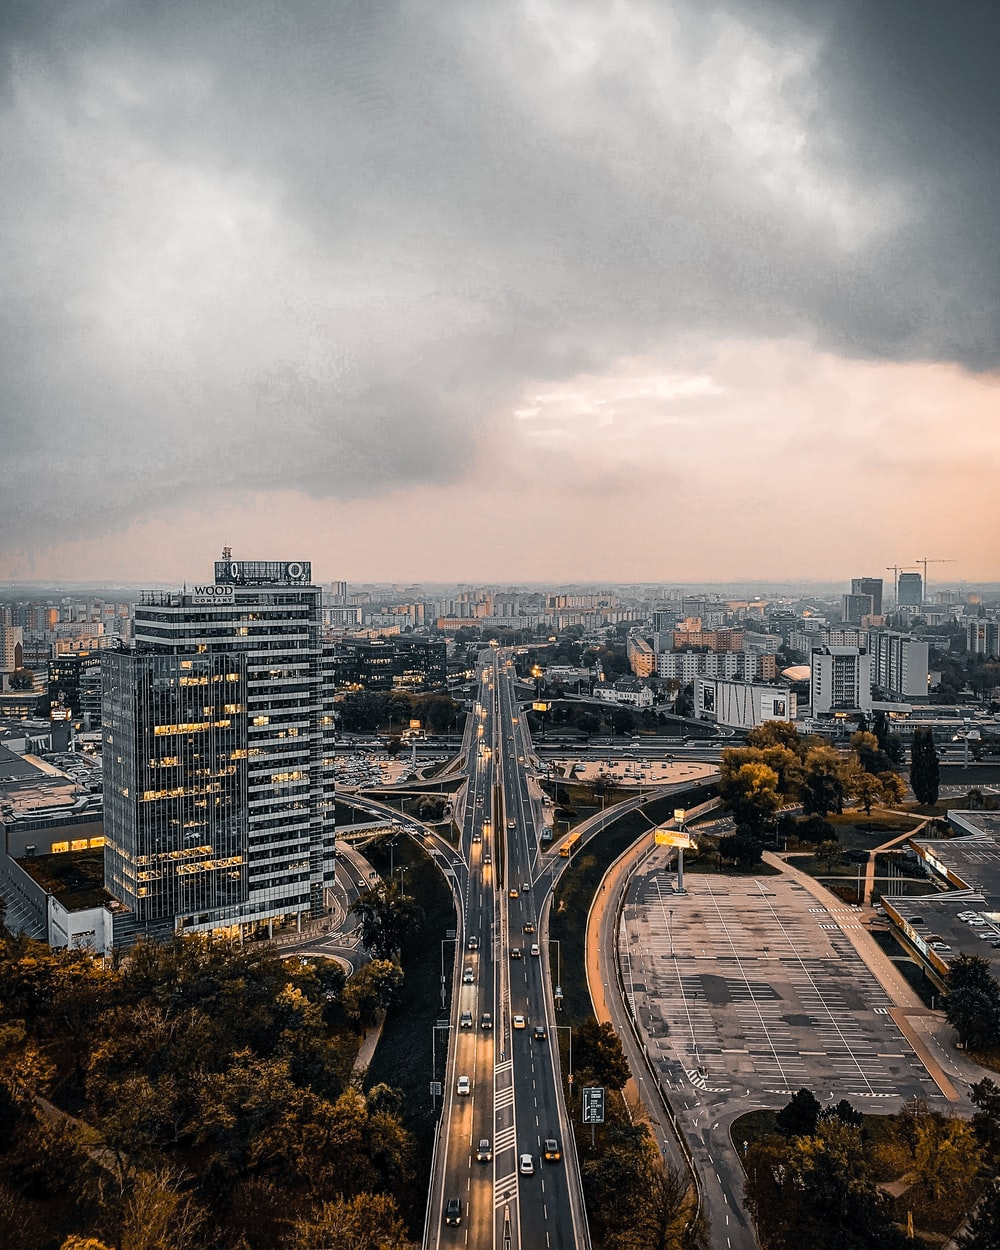 city buildings under gray sky during daytime